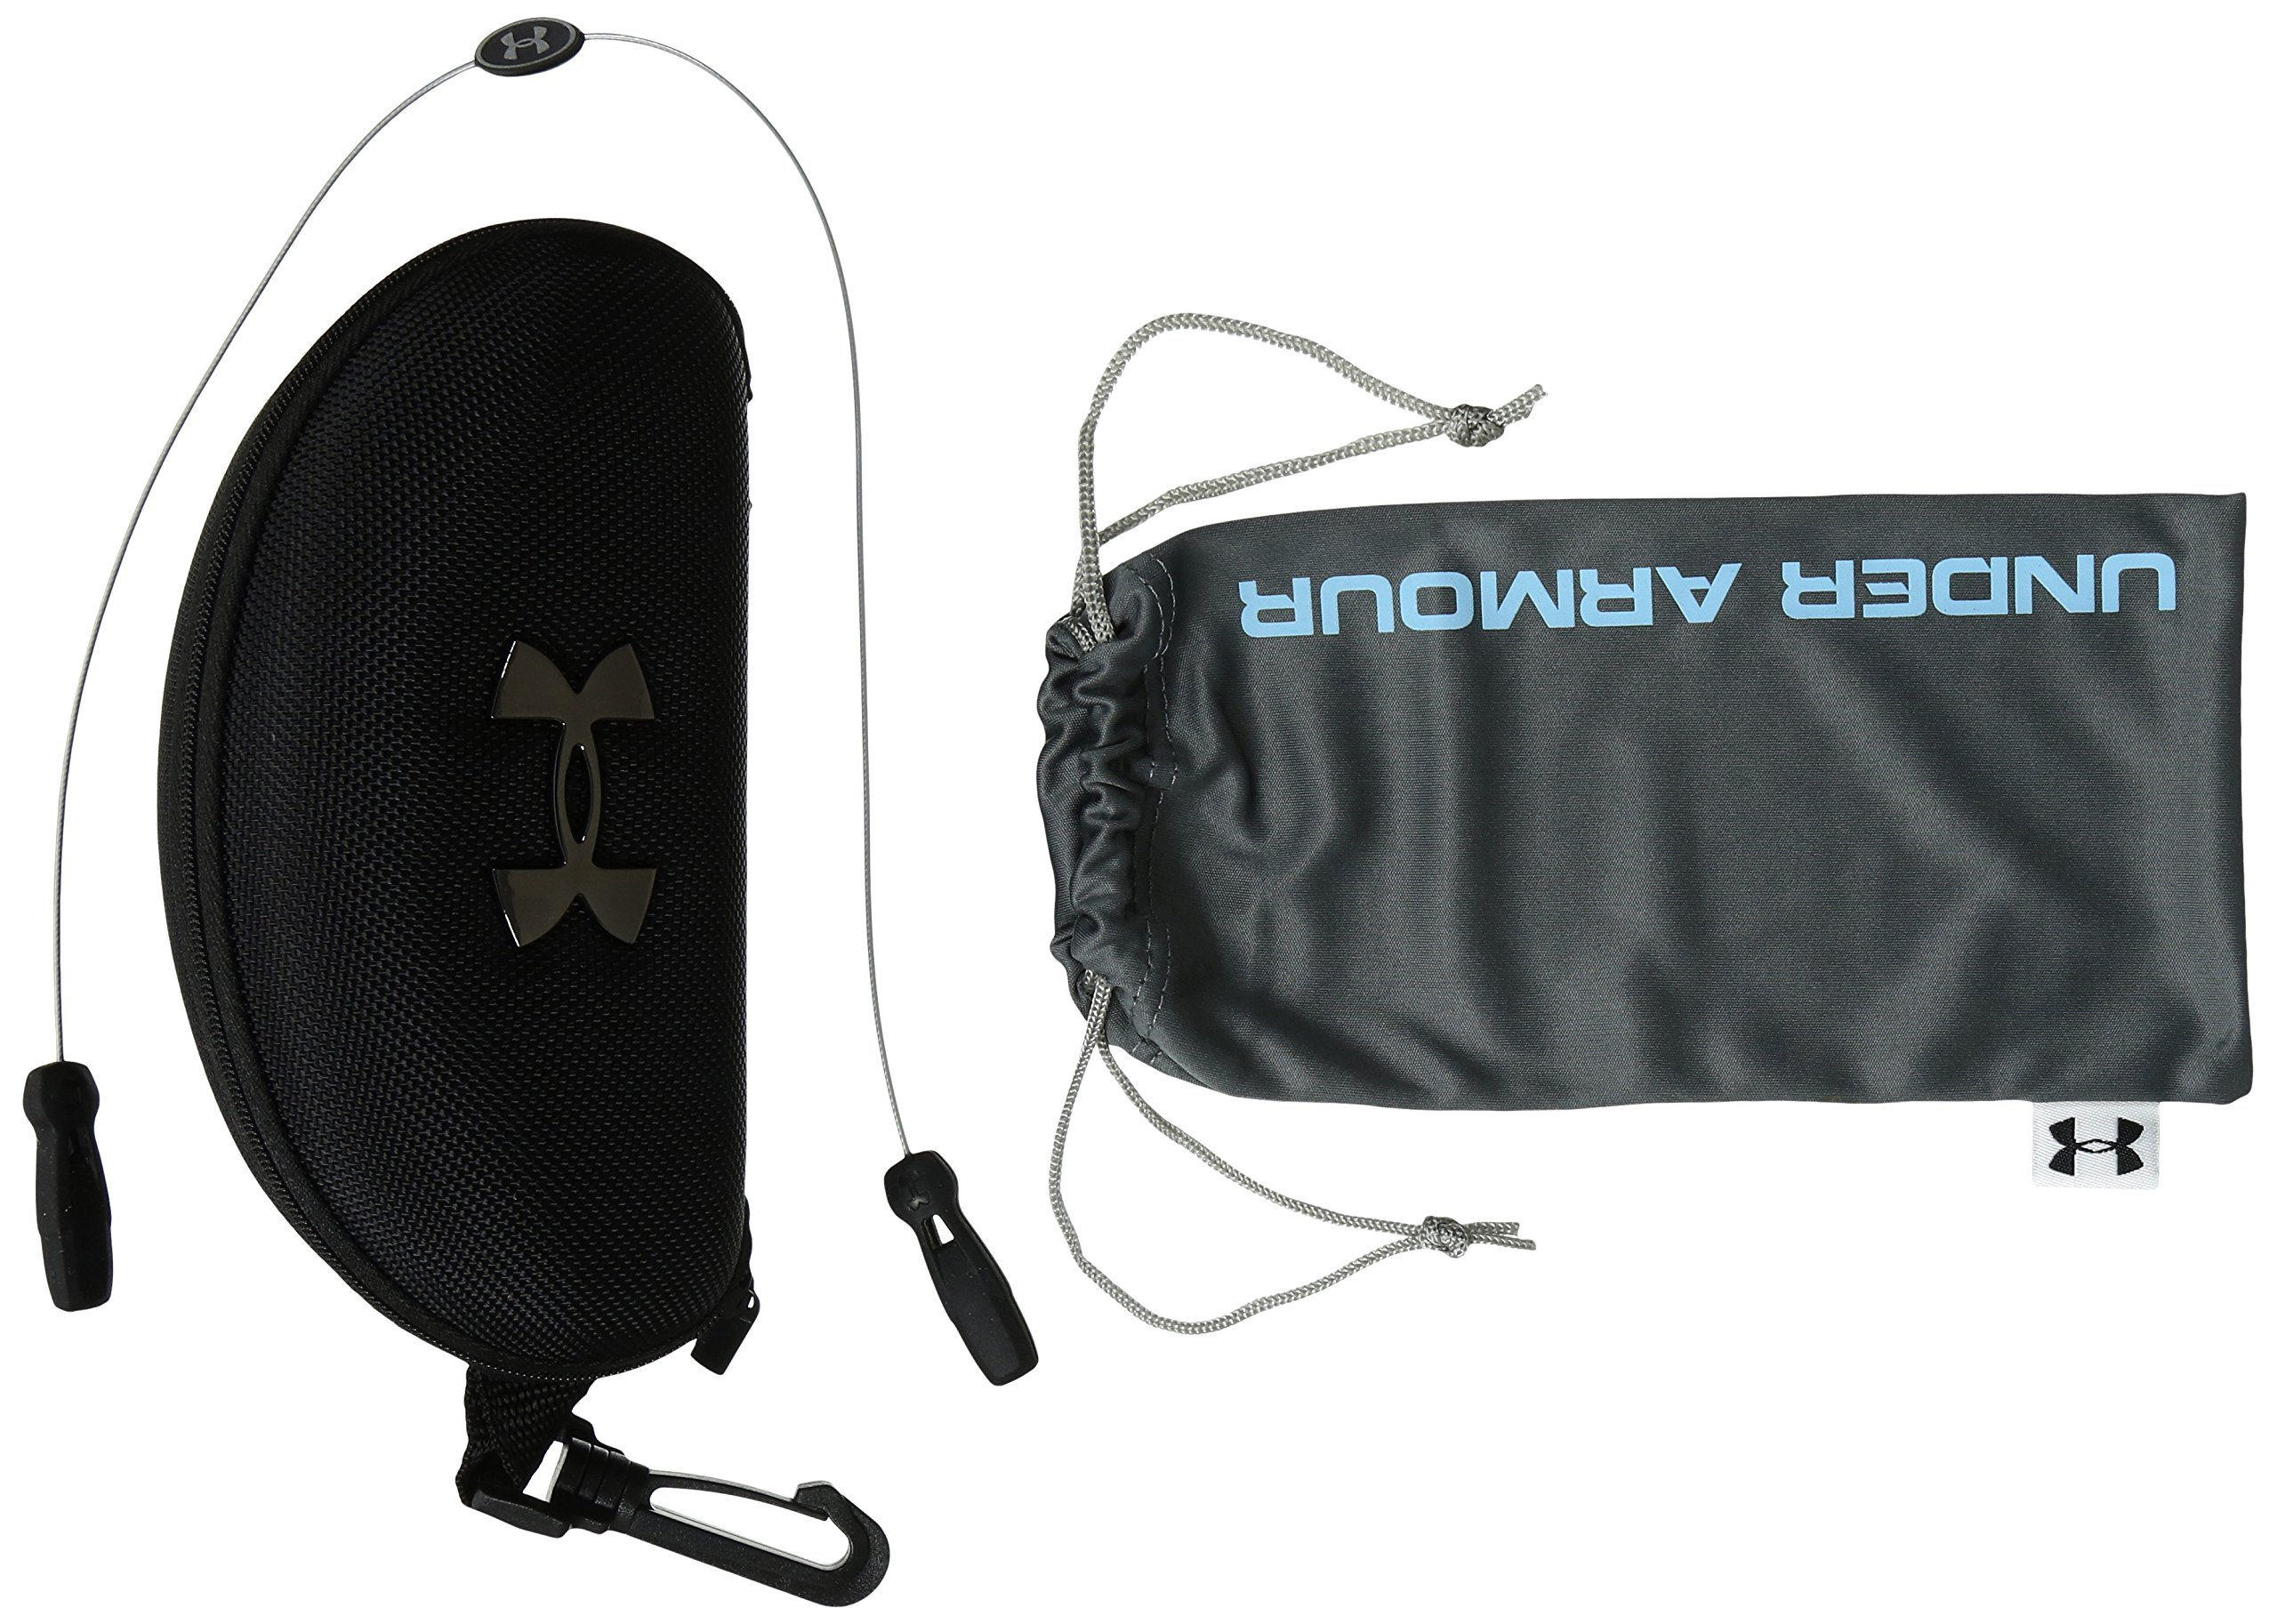 Under Armour Sunglass Accessory Pack